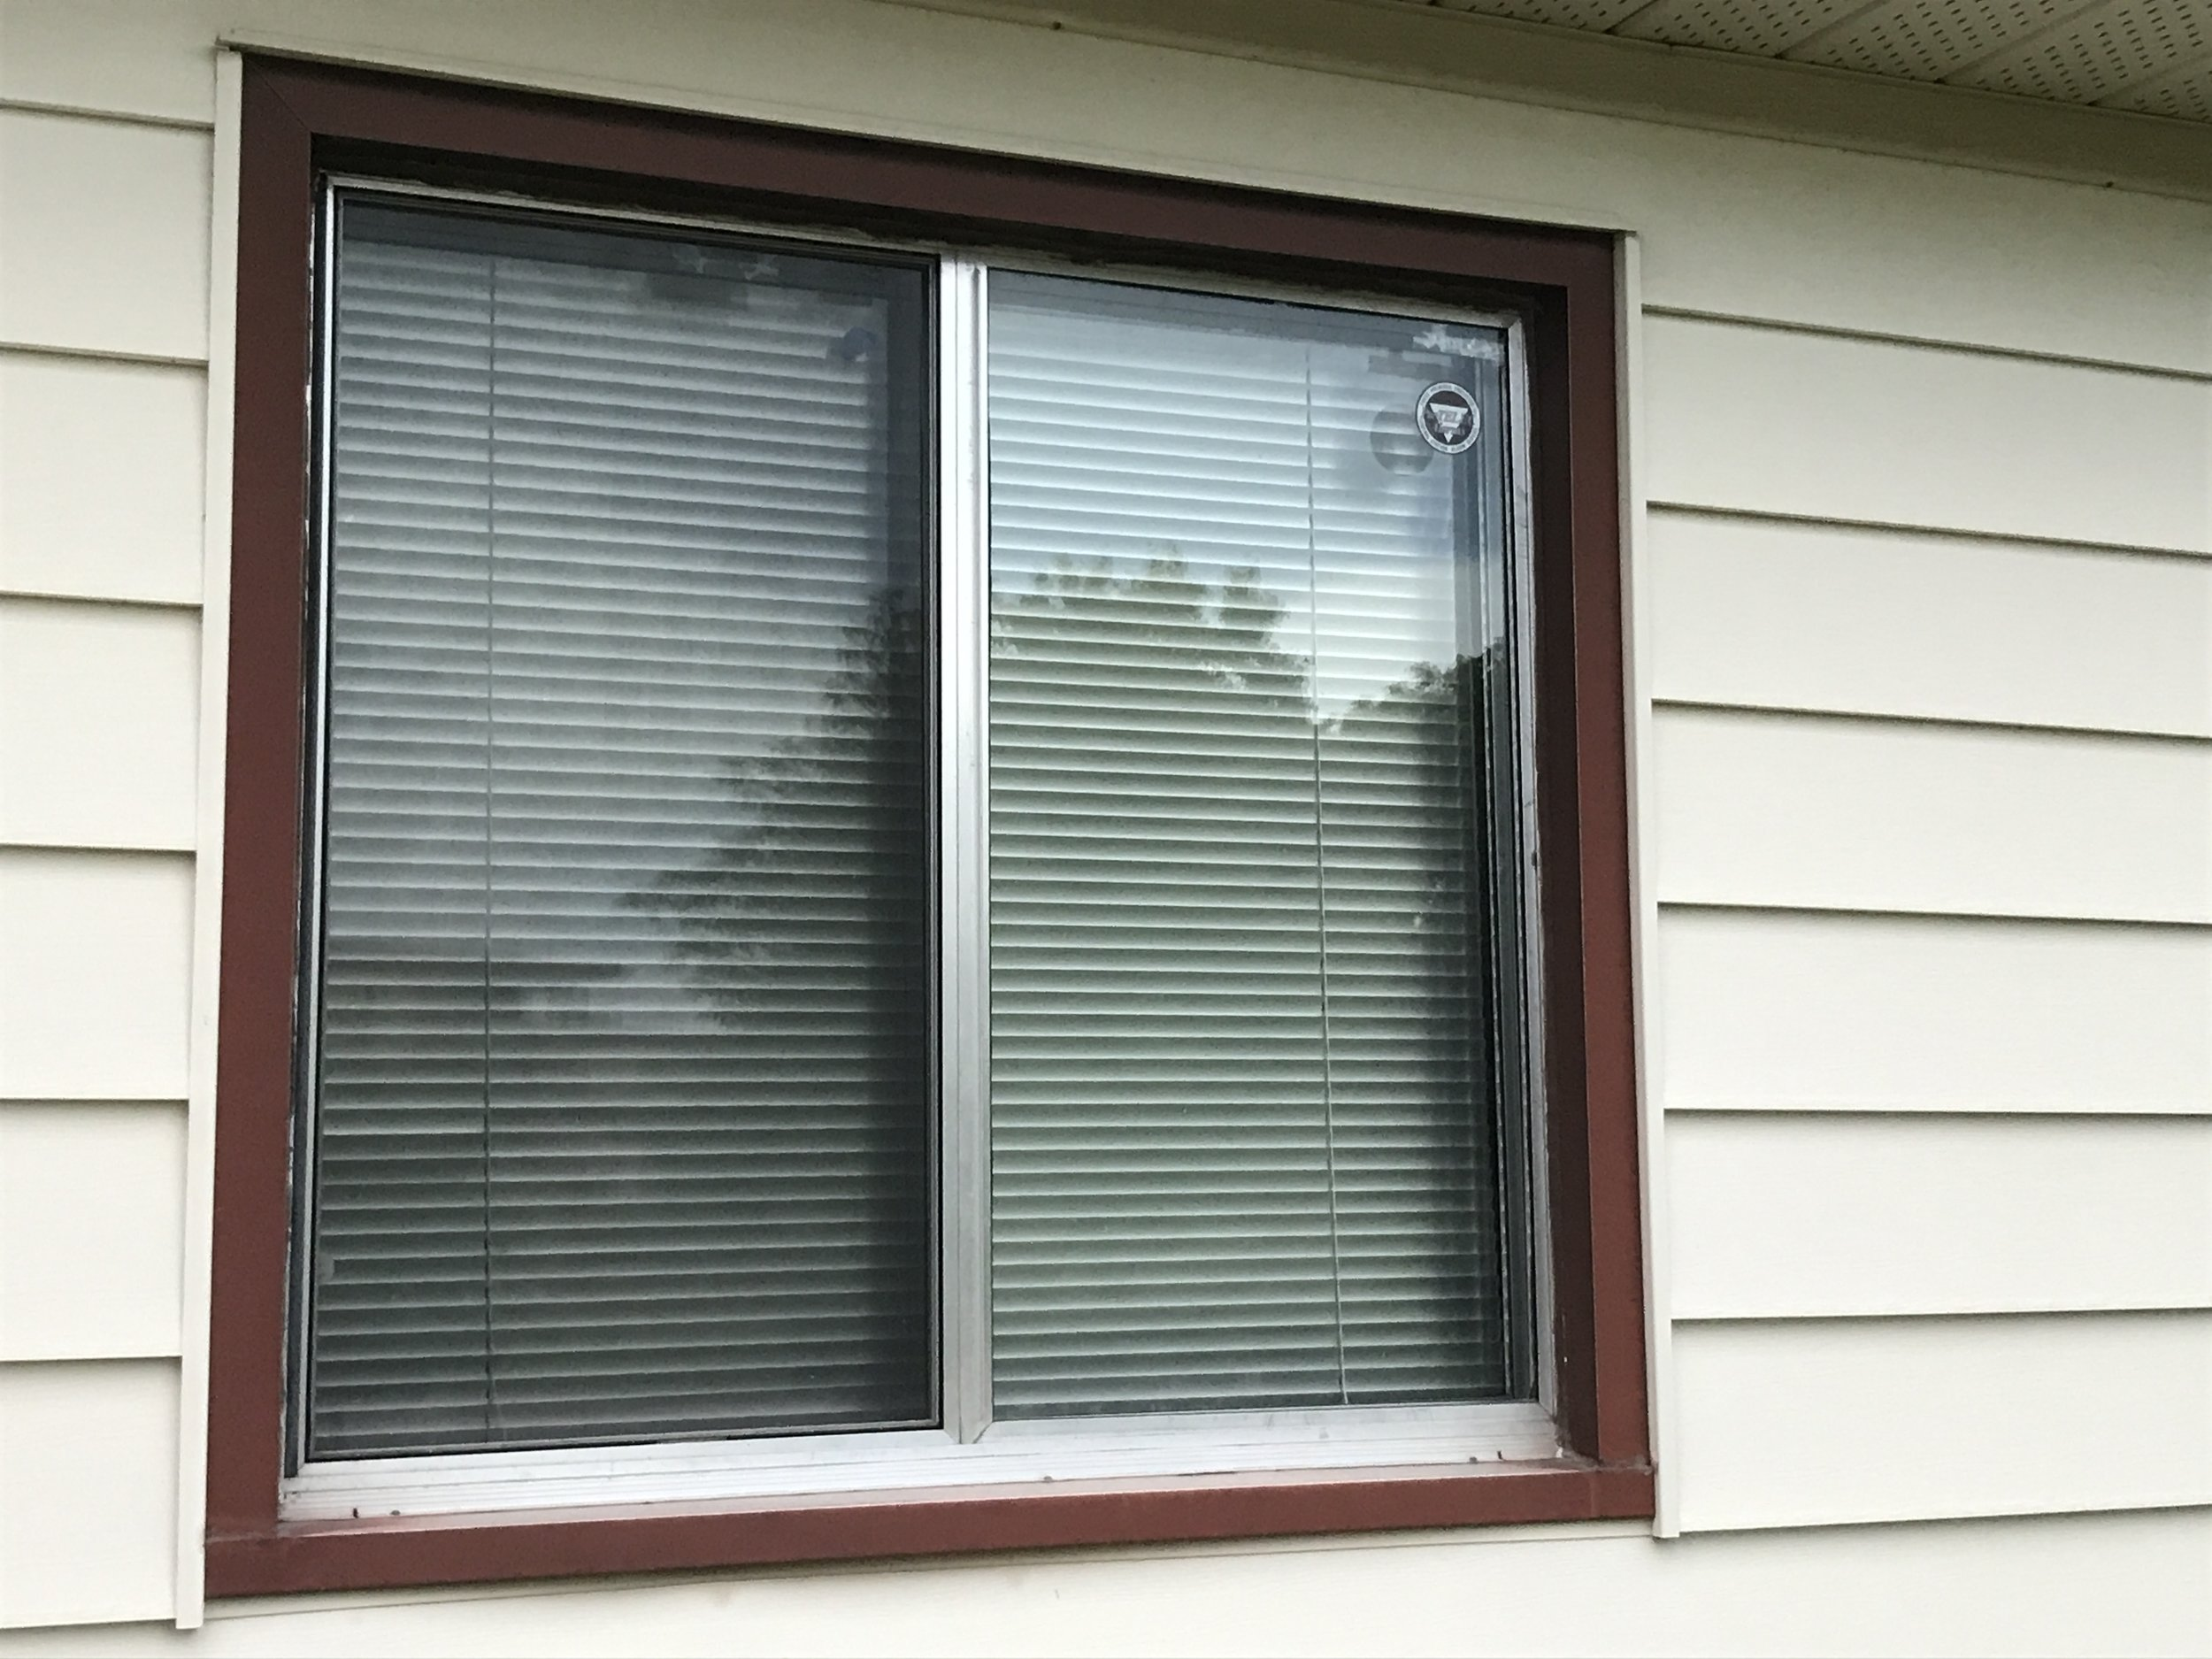 Tip #5 - Close your blinds or shades when you are not home